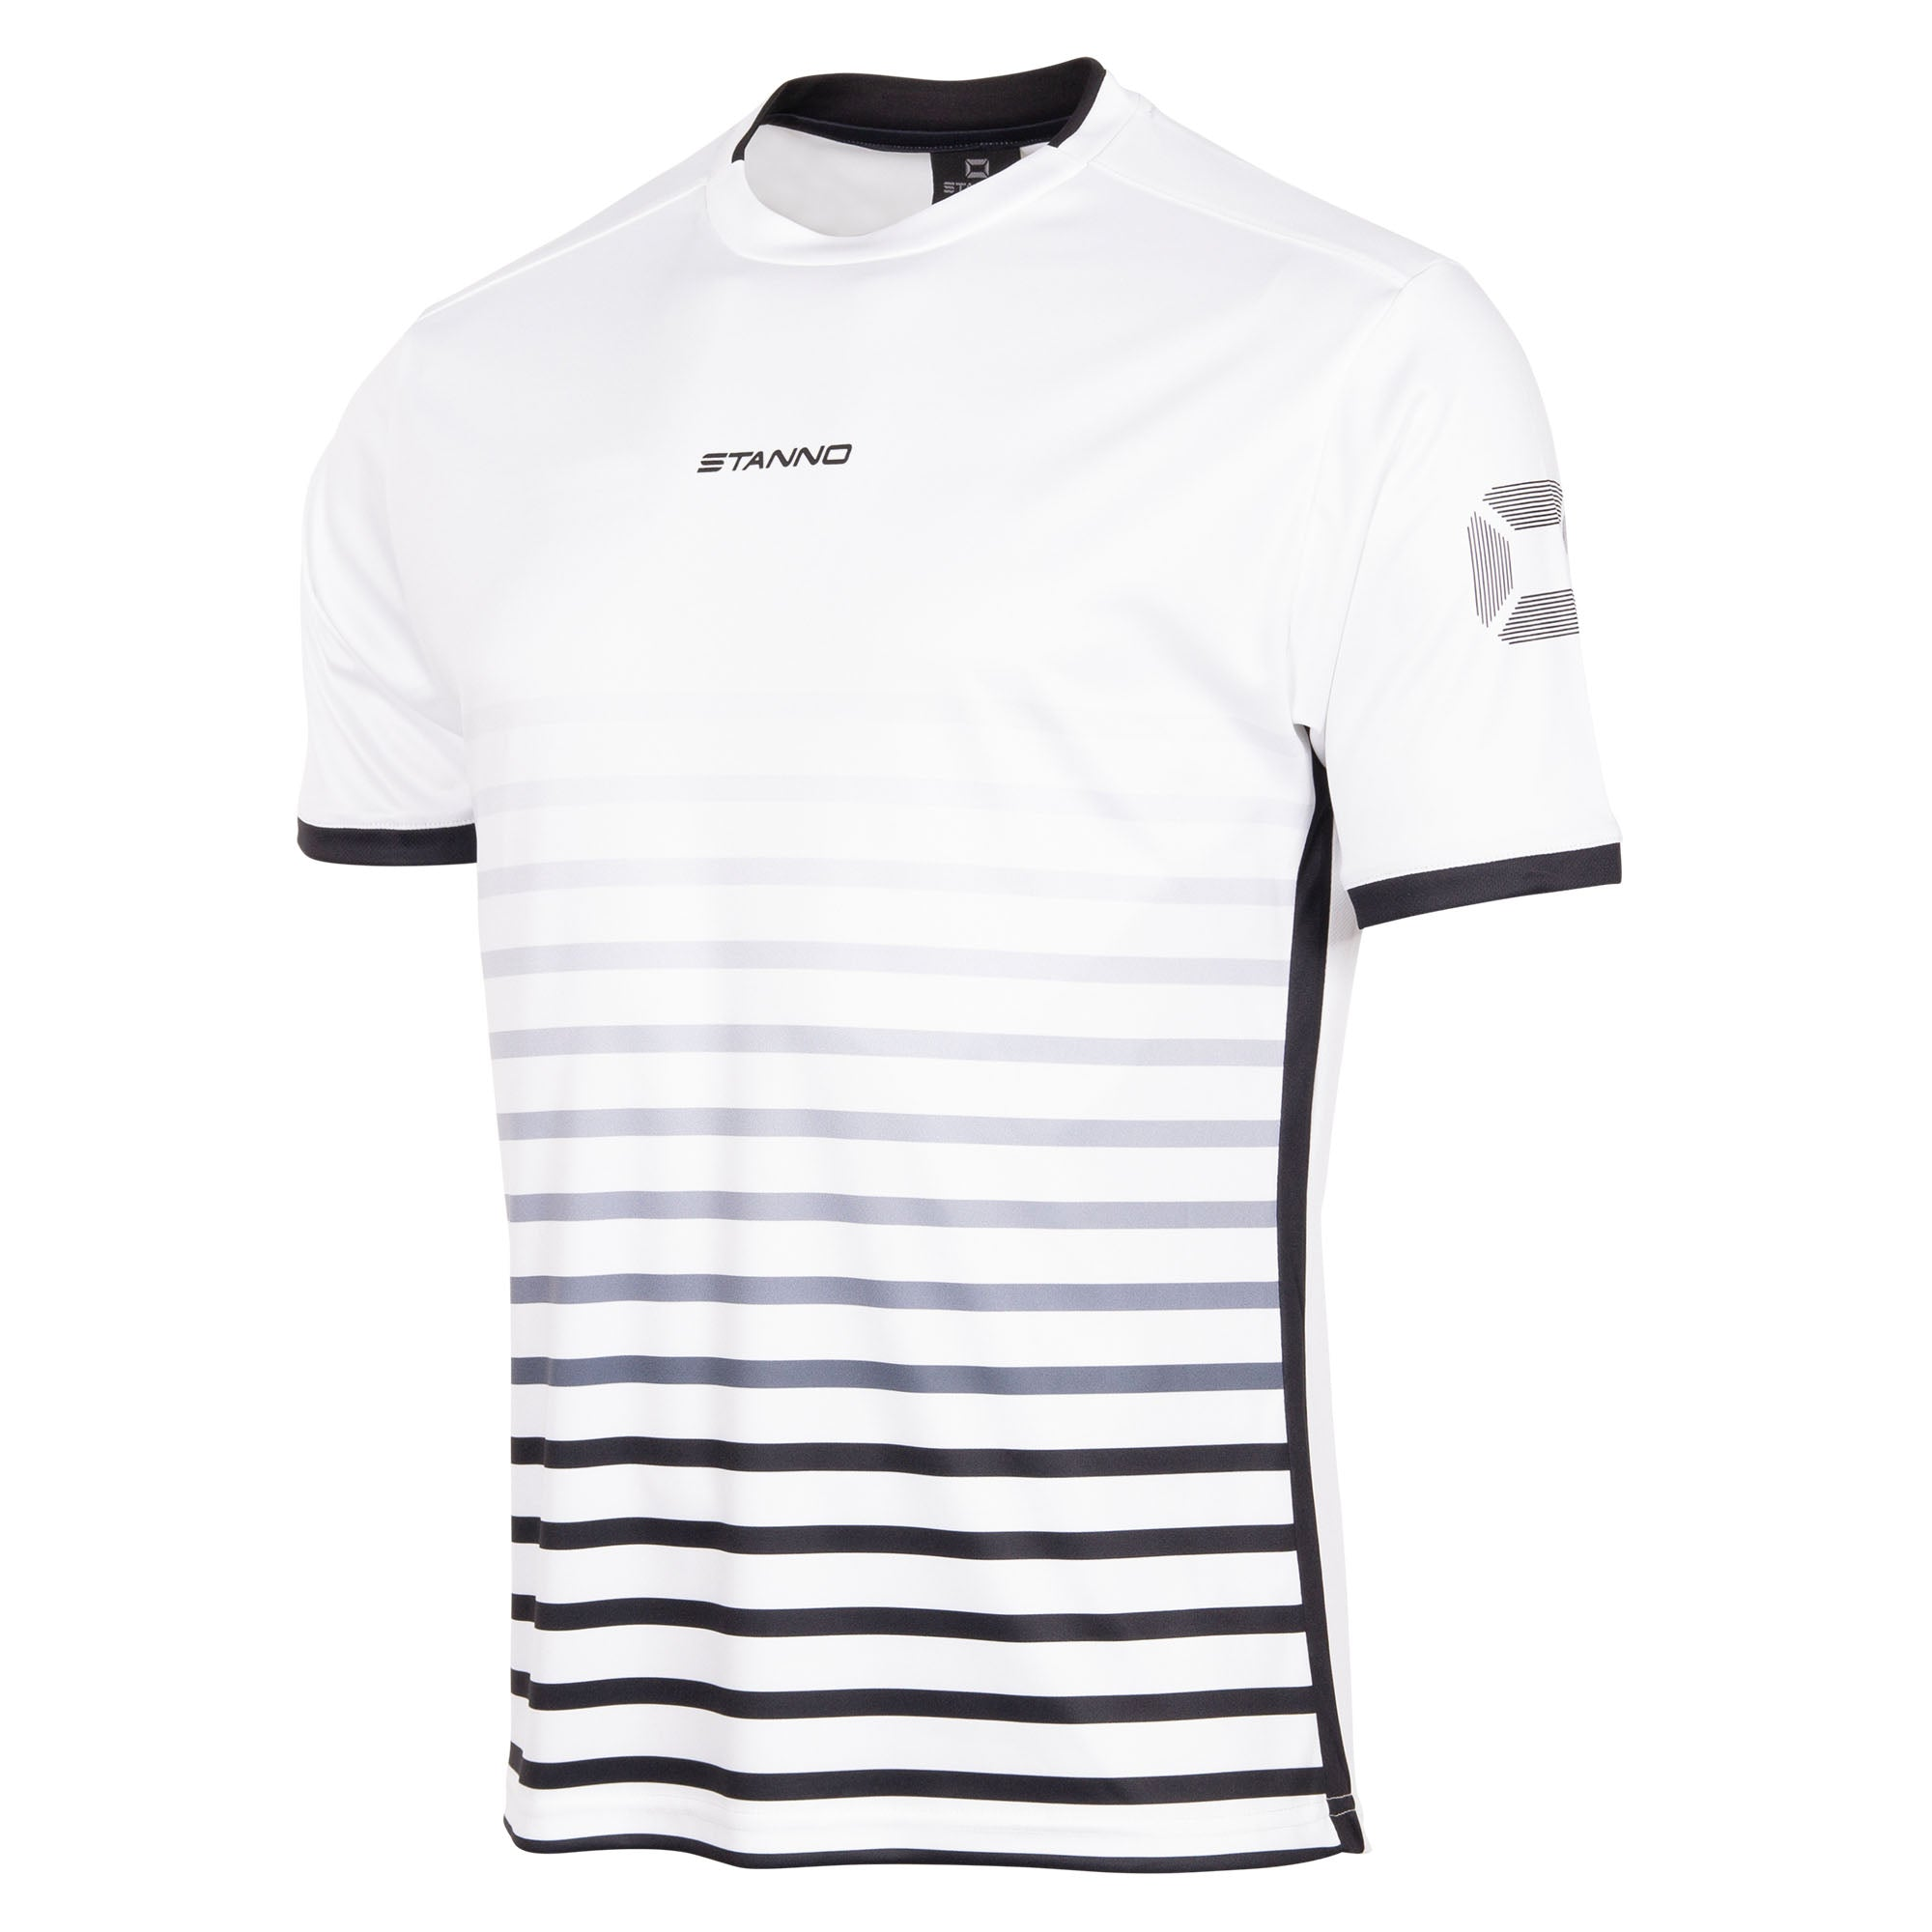 Stanno Fusion limited edition short sleeved shirt in white with black hooped graphic on the chest. Central Stanno text logo on the chest and Stadium logo on the sleeve. Contrast black panel on the sides and cuff.